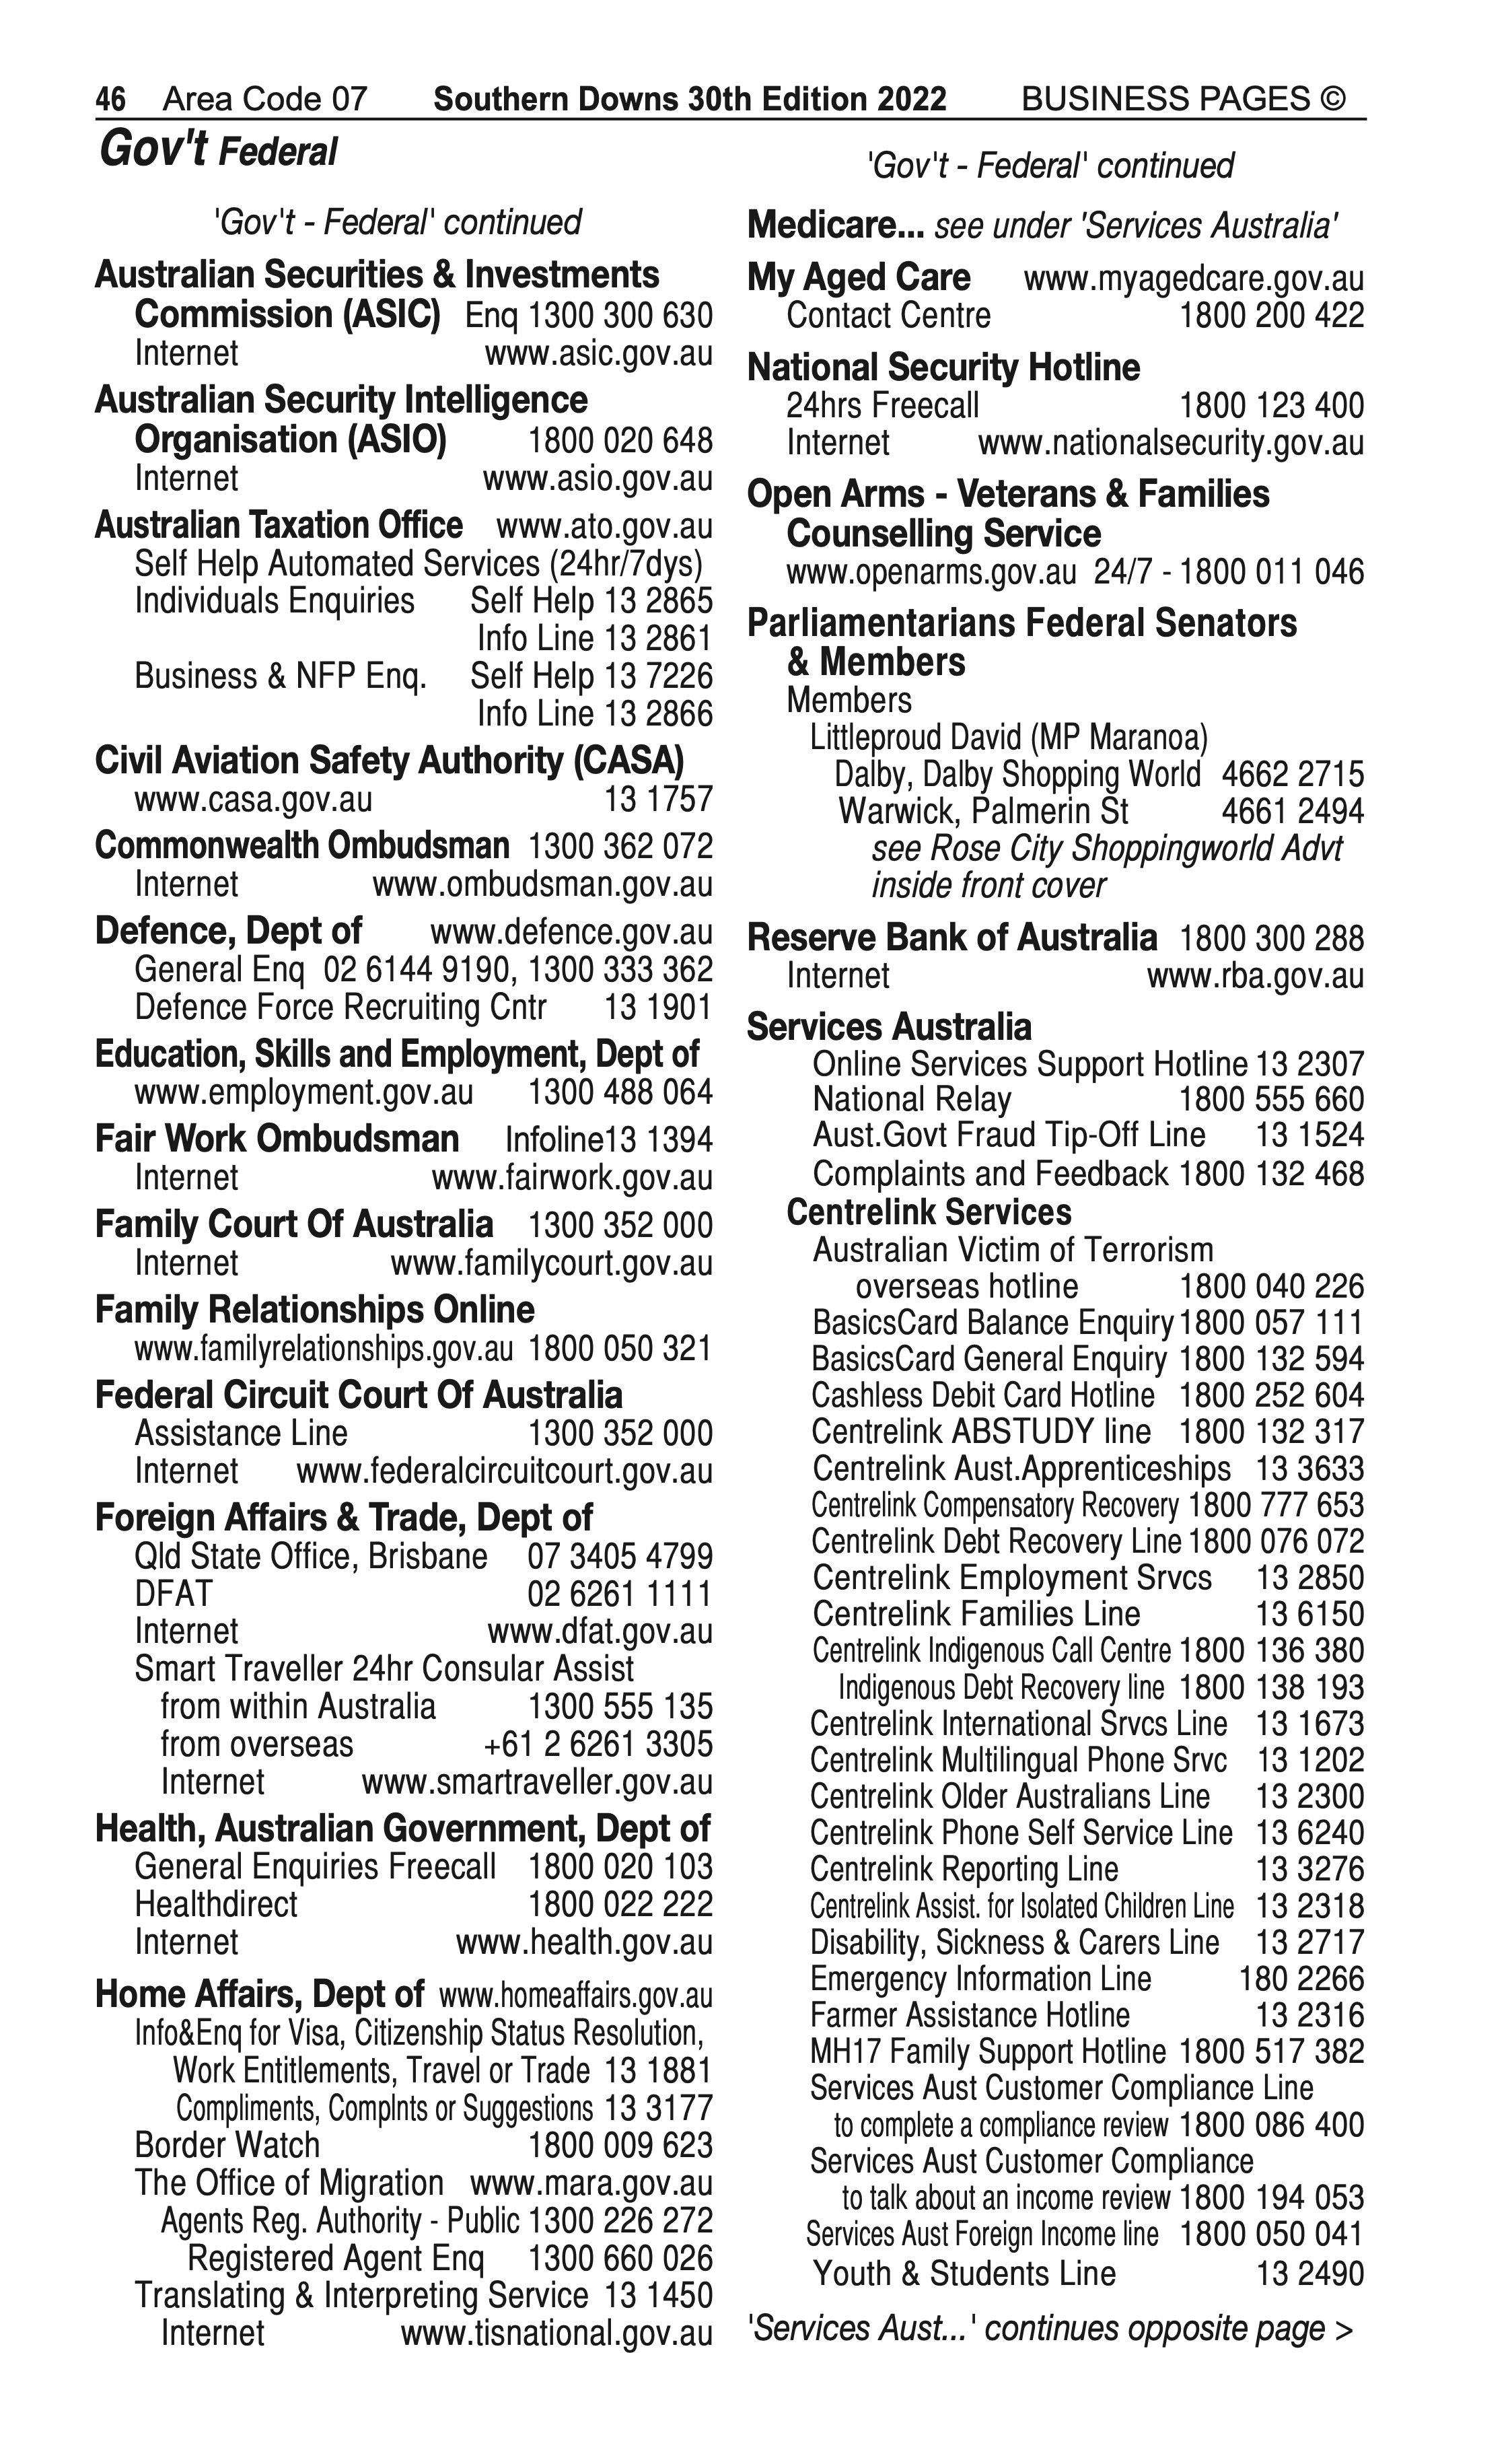 KJ & LA Madsen   Excavating & Earth Moving Services in Warwick   PBezy Pocket Books local directories - page 46